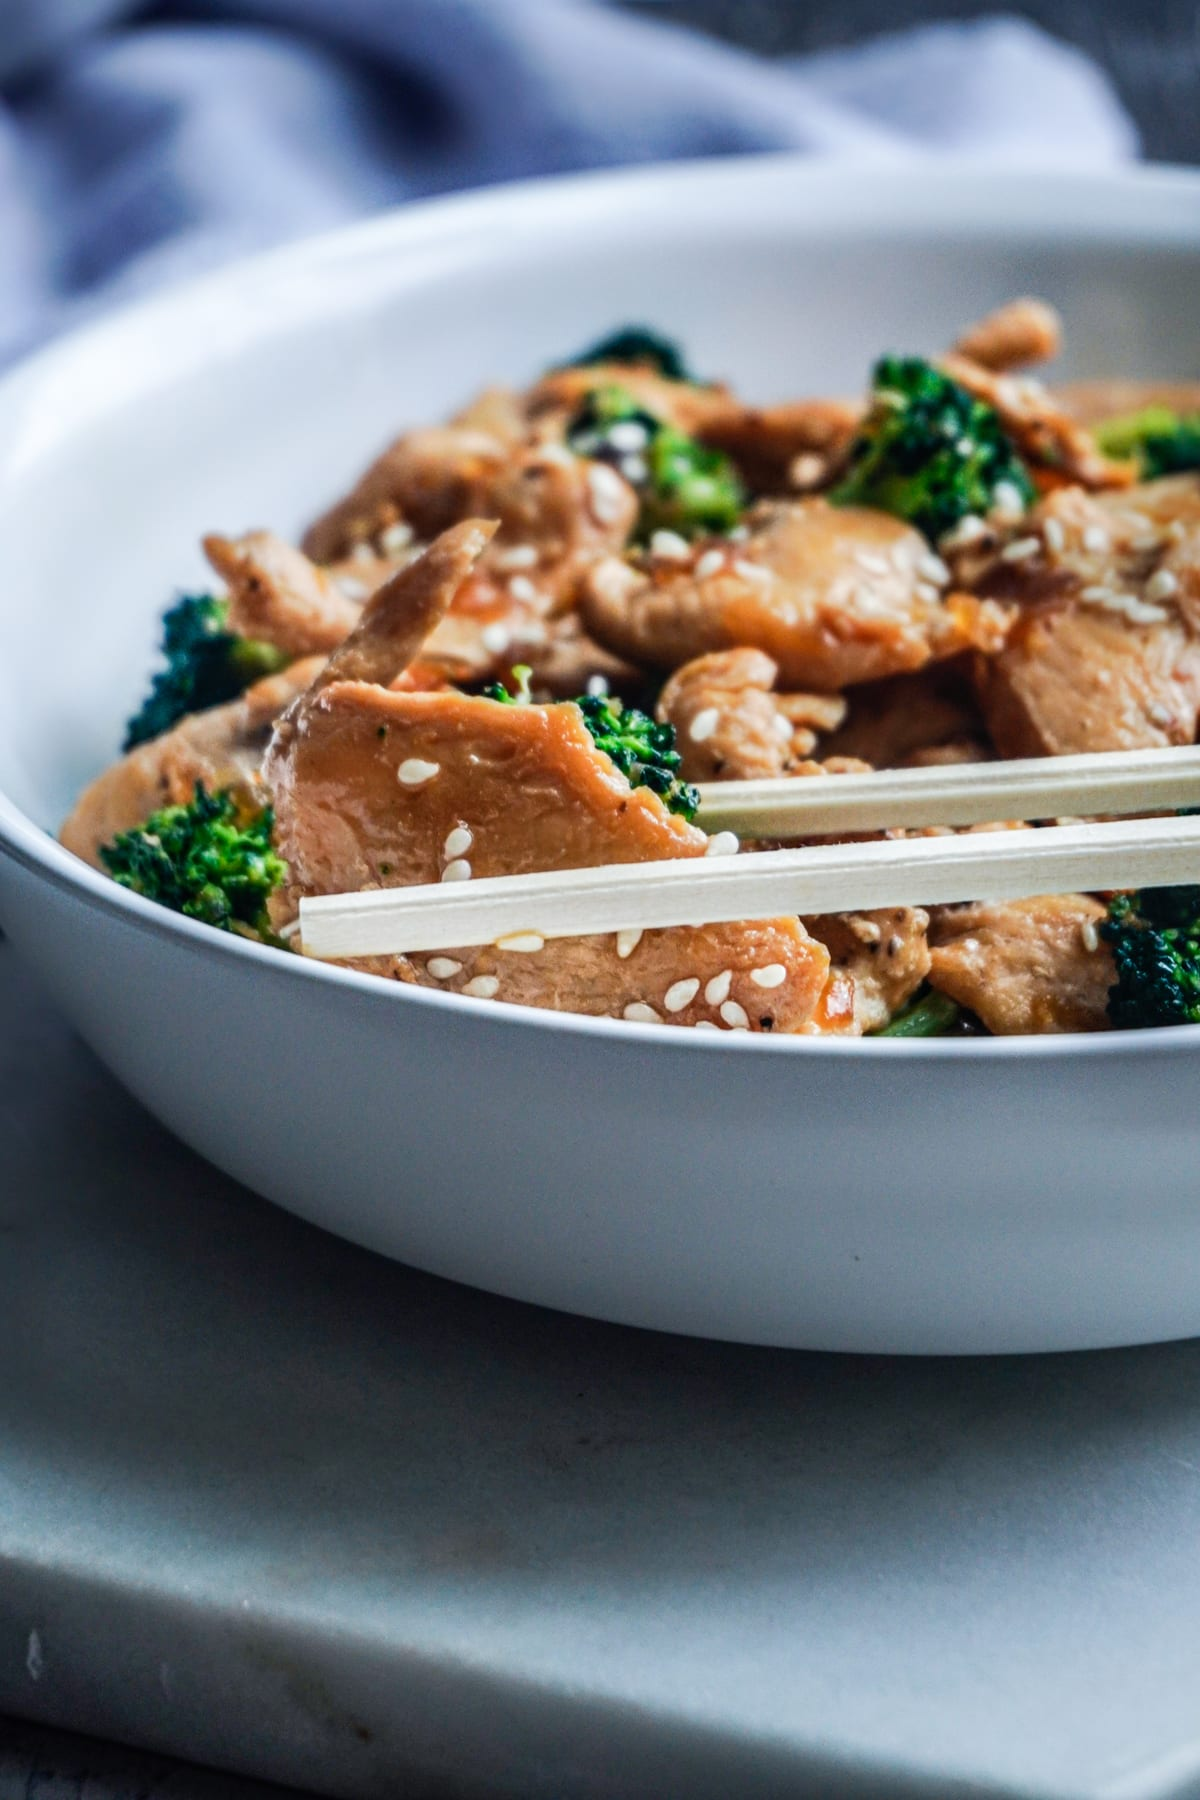 Chinese chicken and broccoli with chopsticks